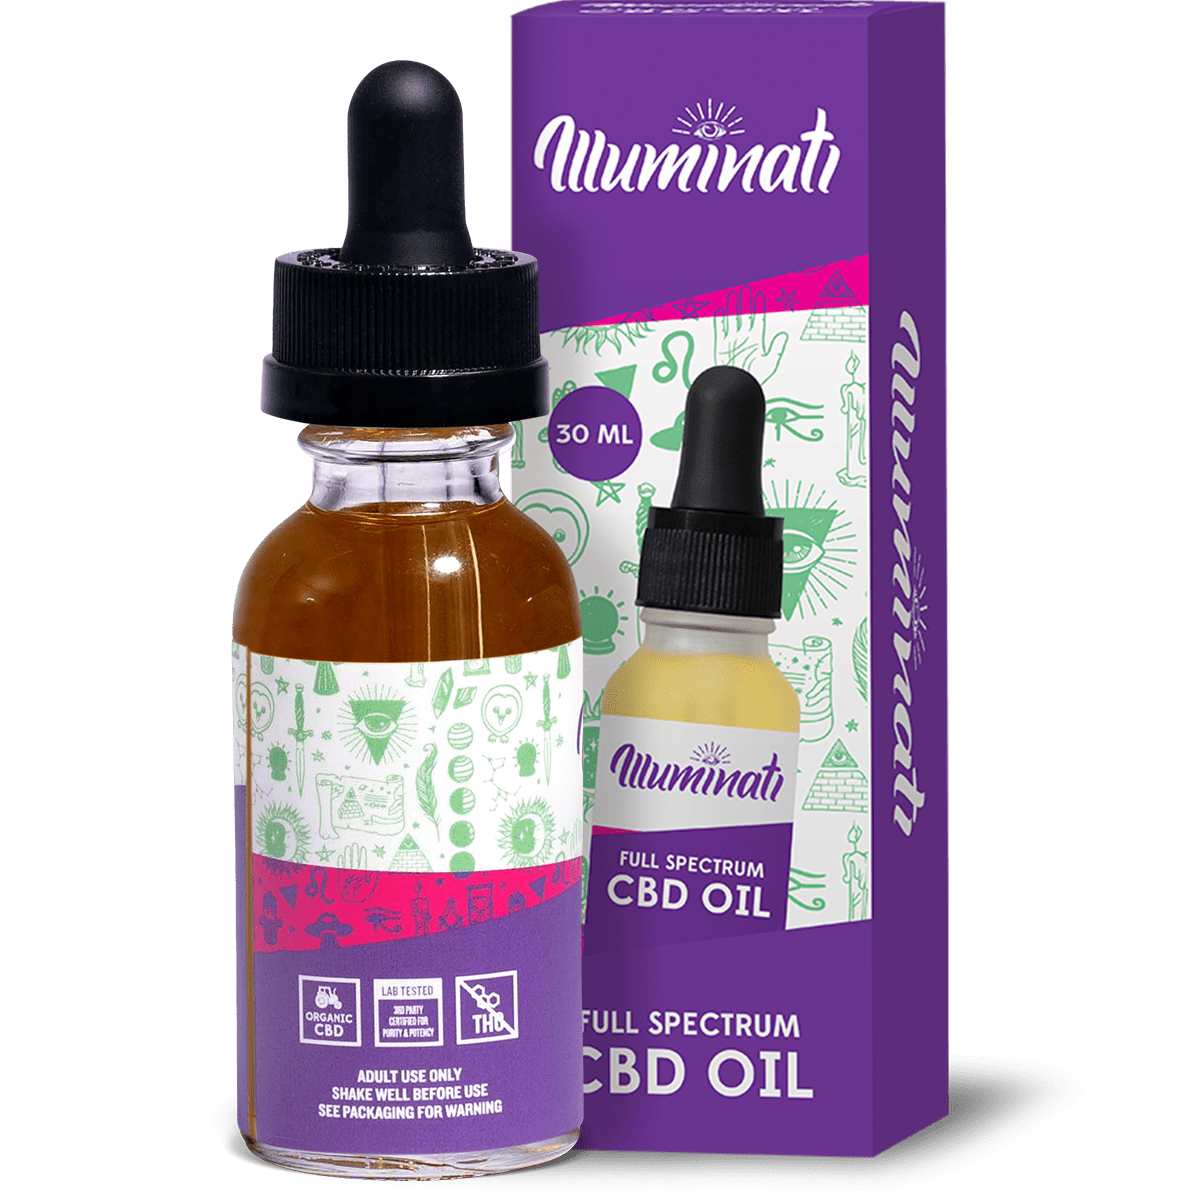 Illuminati Full Spectrum CBD Oil Drops 3000mg Back